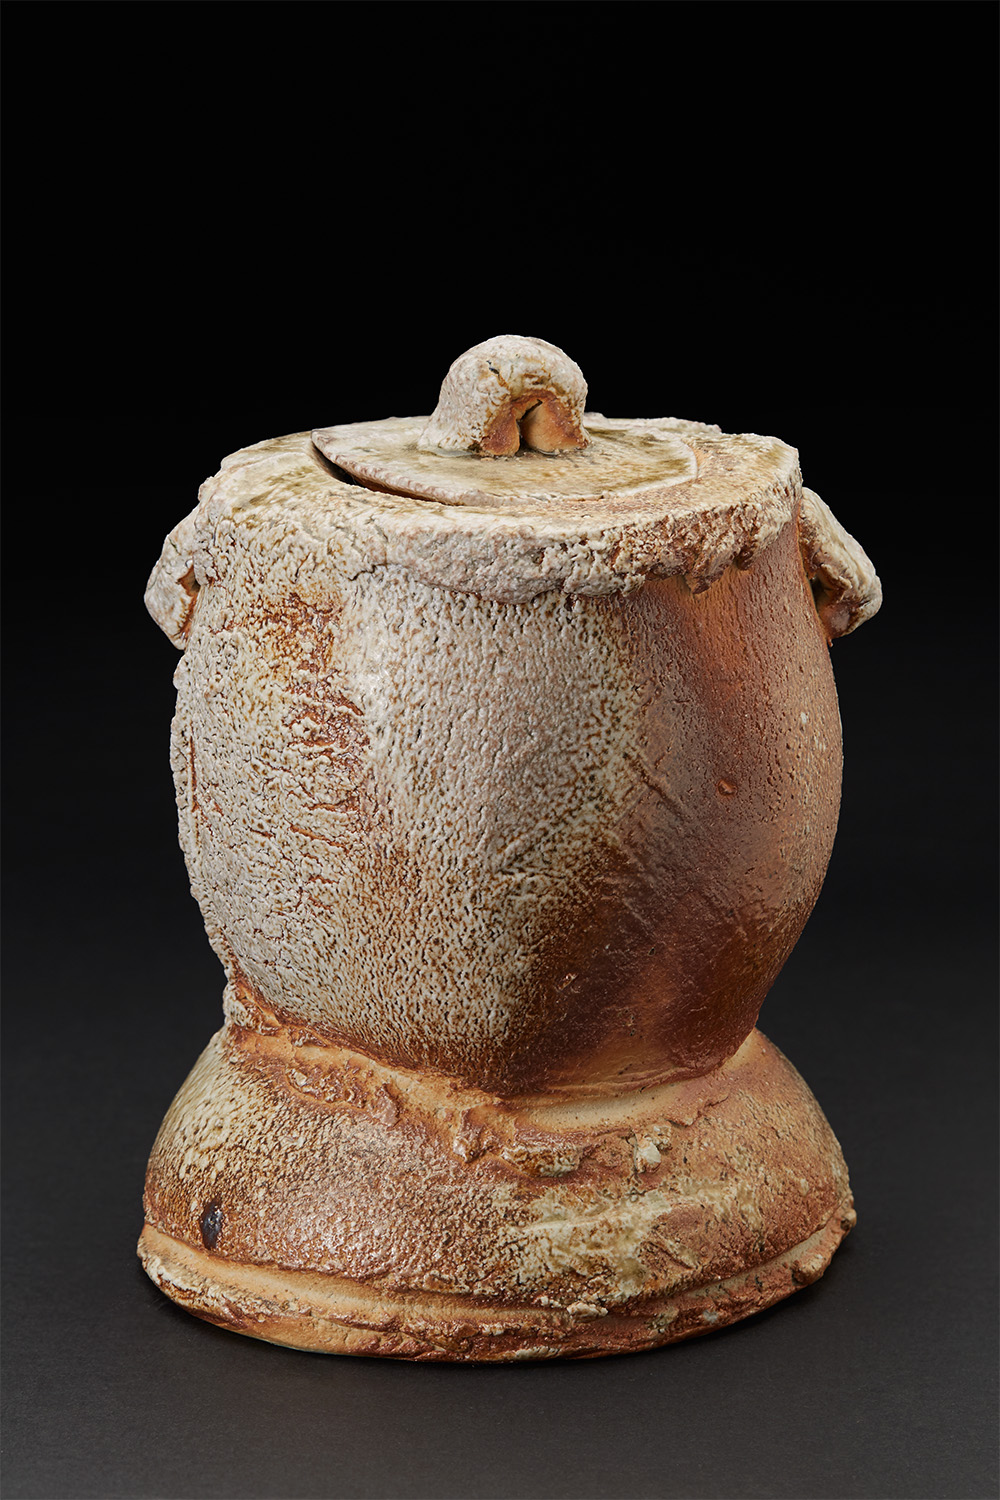 John Dix    Mizusashi  , 2006 Natural ash glaze/woodfired ceramic 10 x 7.5 x 7 inches 25.4 x 19.1 x 17.8 cm JDix 5